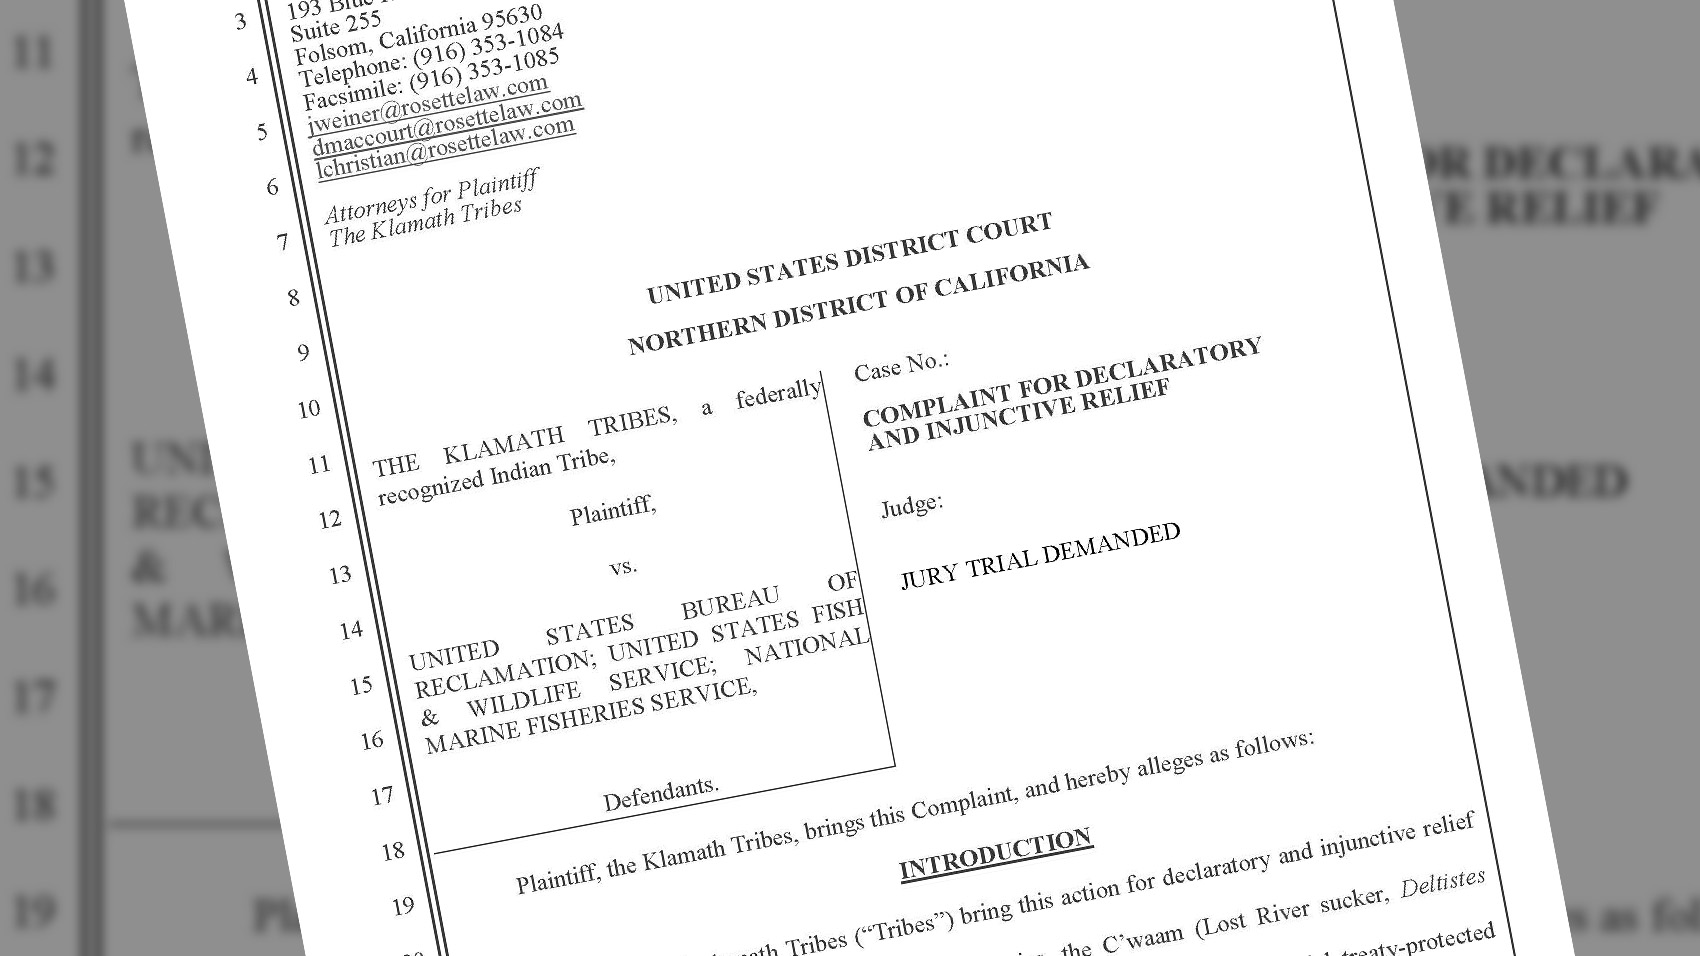 Klamath Tribes file lawsuit in US District Court, Northern District of California to protect Tribal fisheries. May 24, 2018.